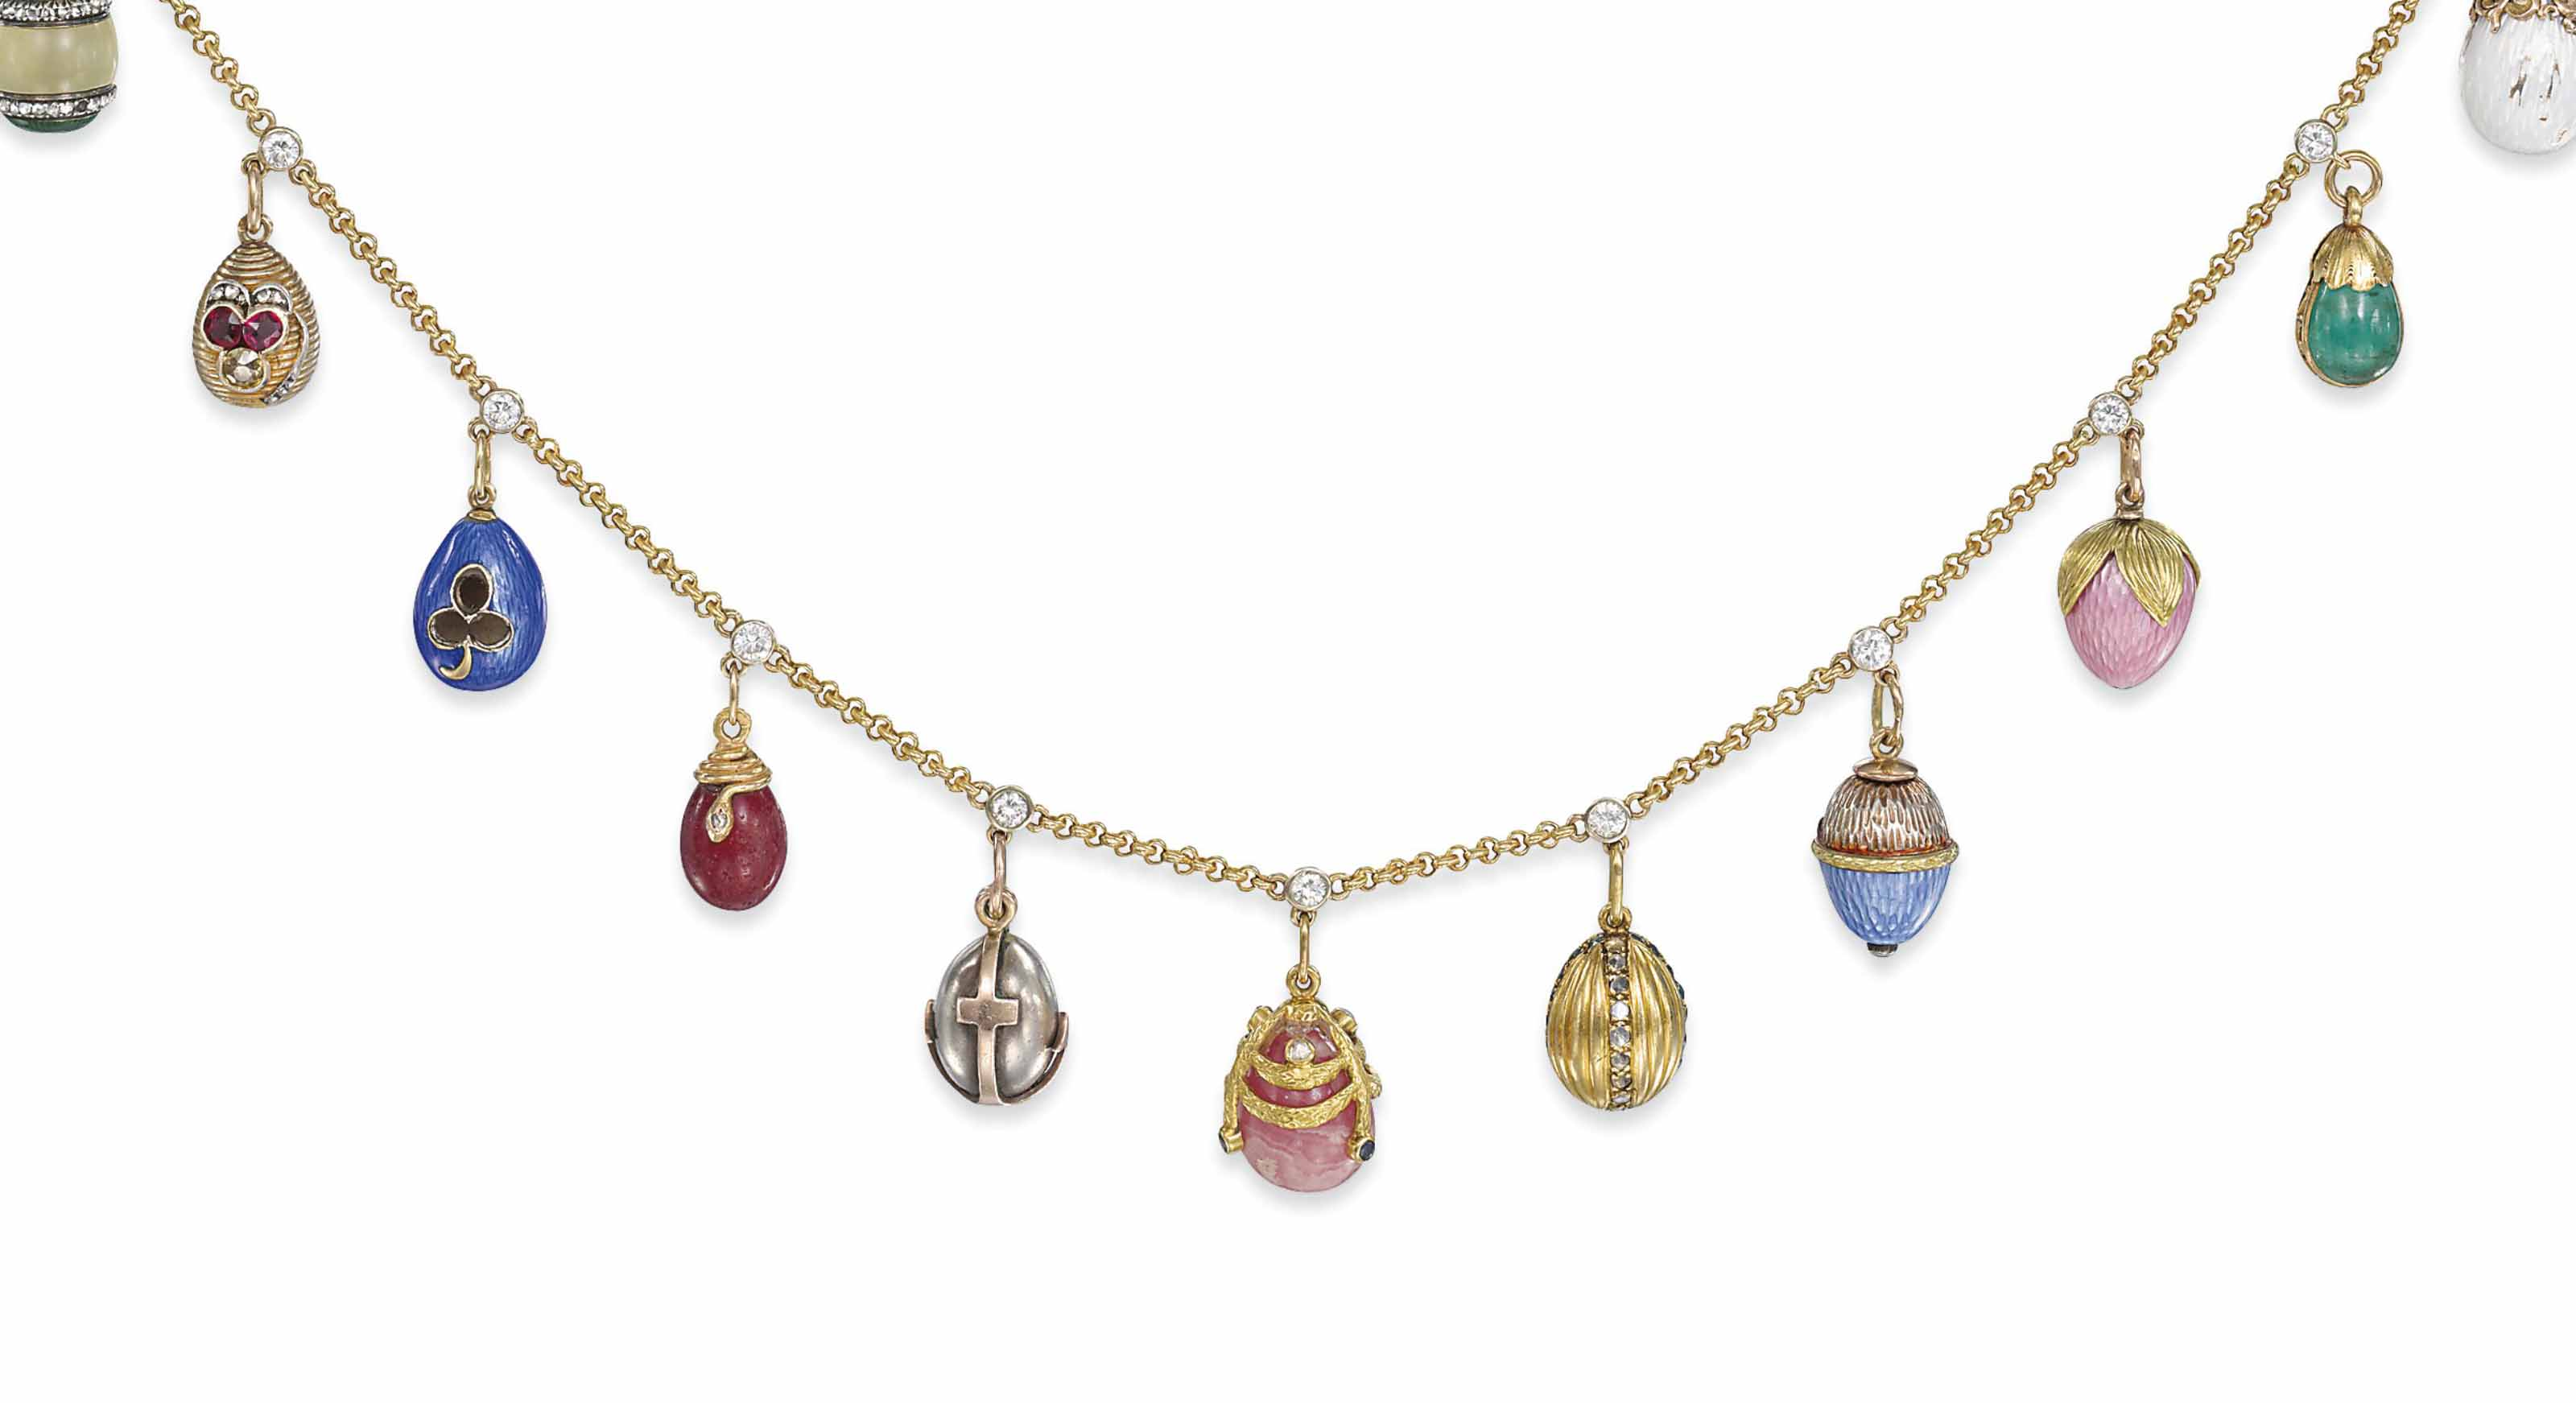 A JEWELLED, GOLD, SILVER, HARD